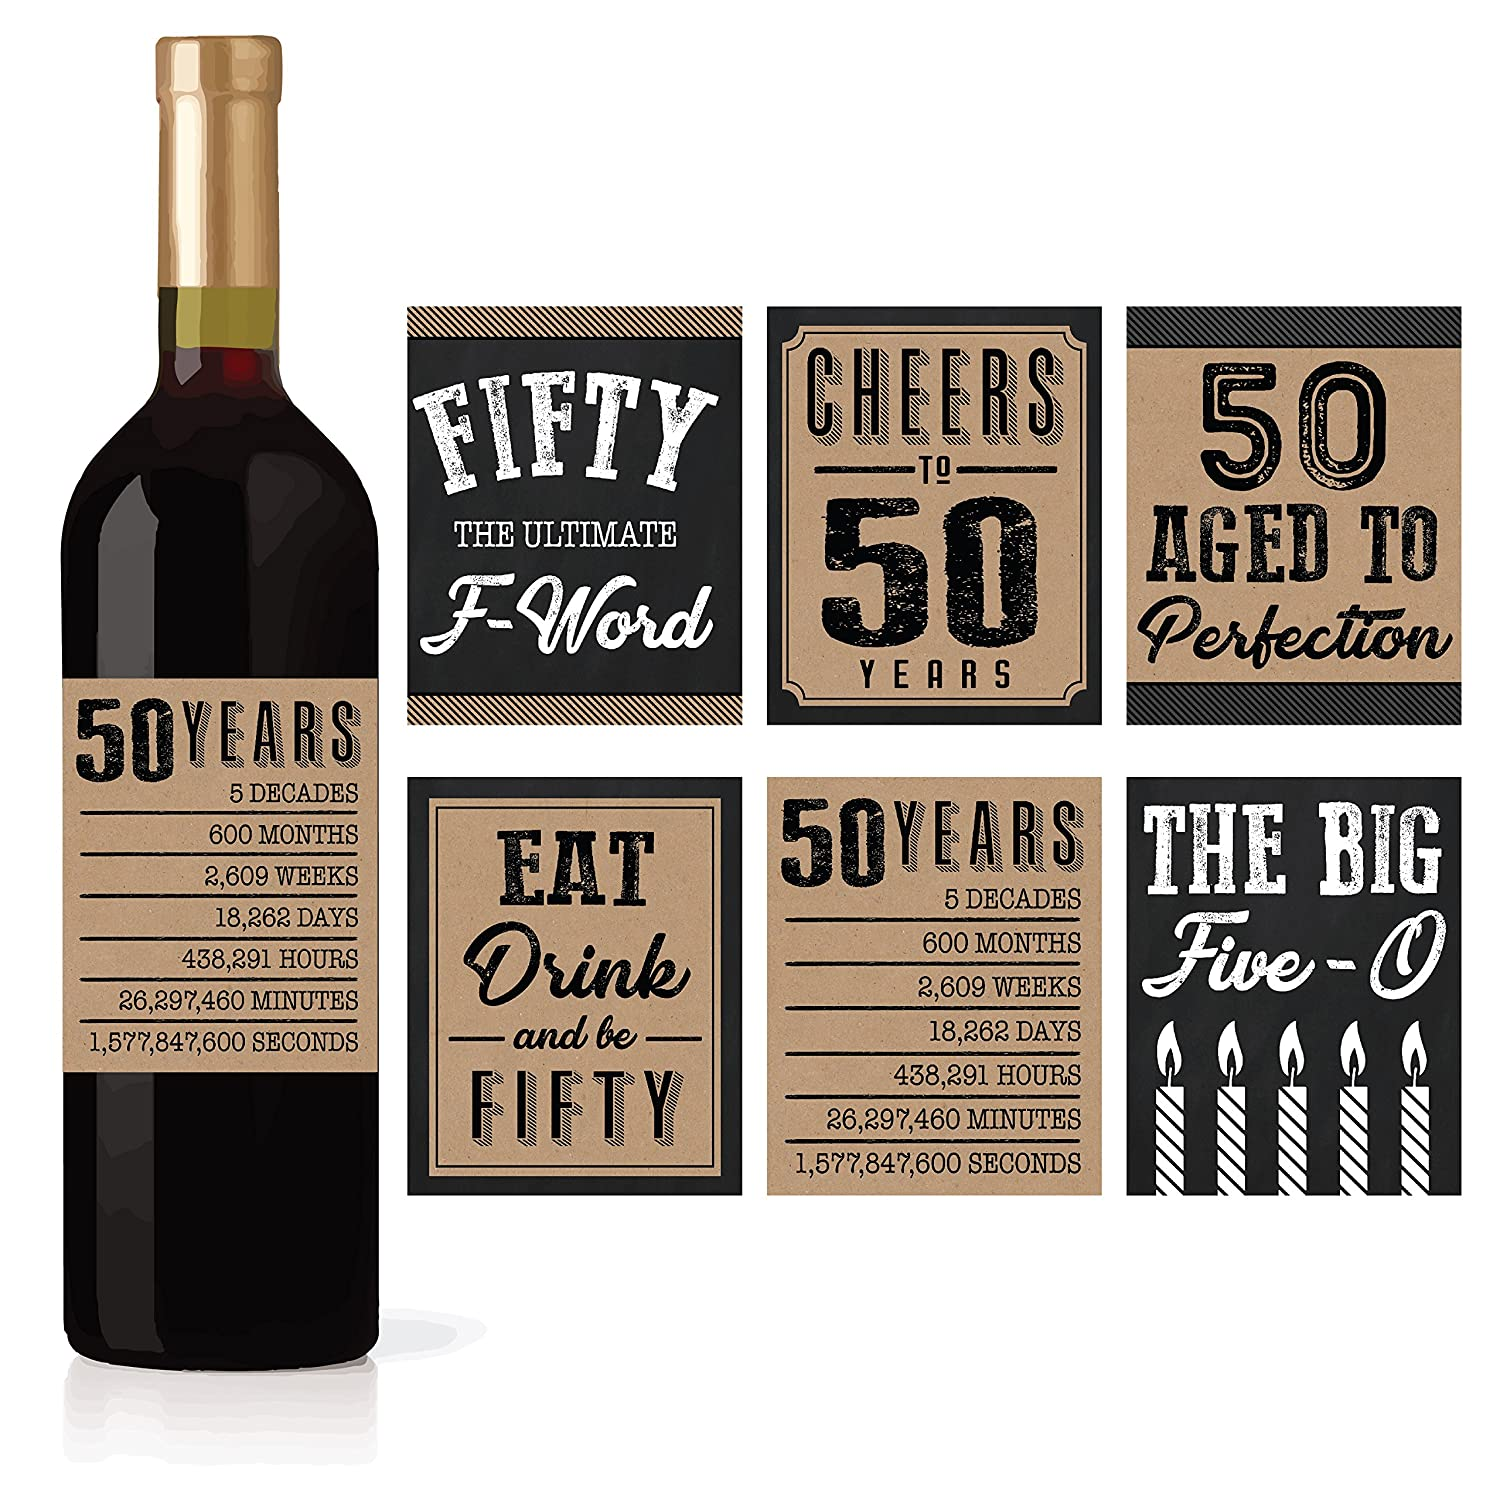 6 50th Birthday Wine or Beer Bottle Labels Stickers Present, 1968 Bday Milestone Gifts For Him Man, Cheers to 50 Years, Fifty, Funny Fabulous Unique Party Decorations Supplies For Men Husband Male